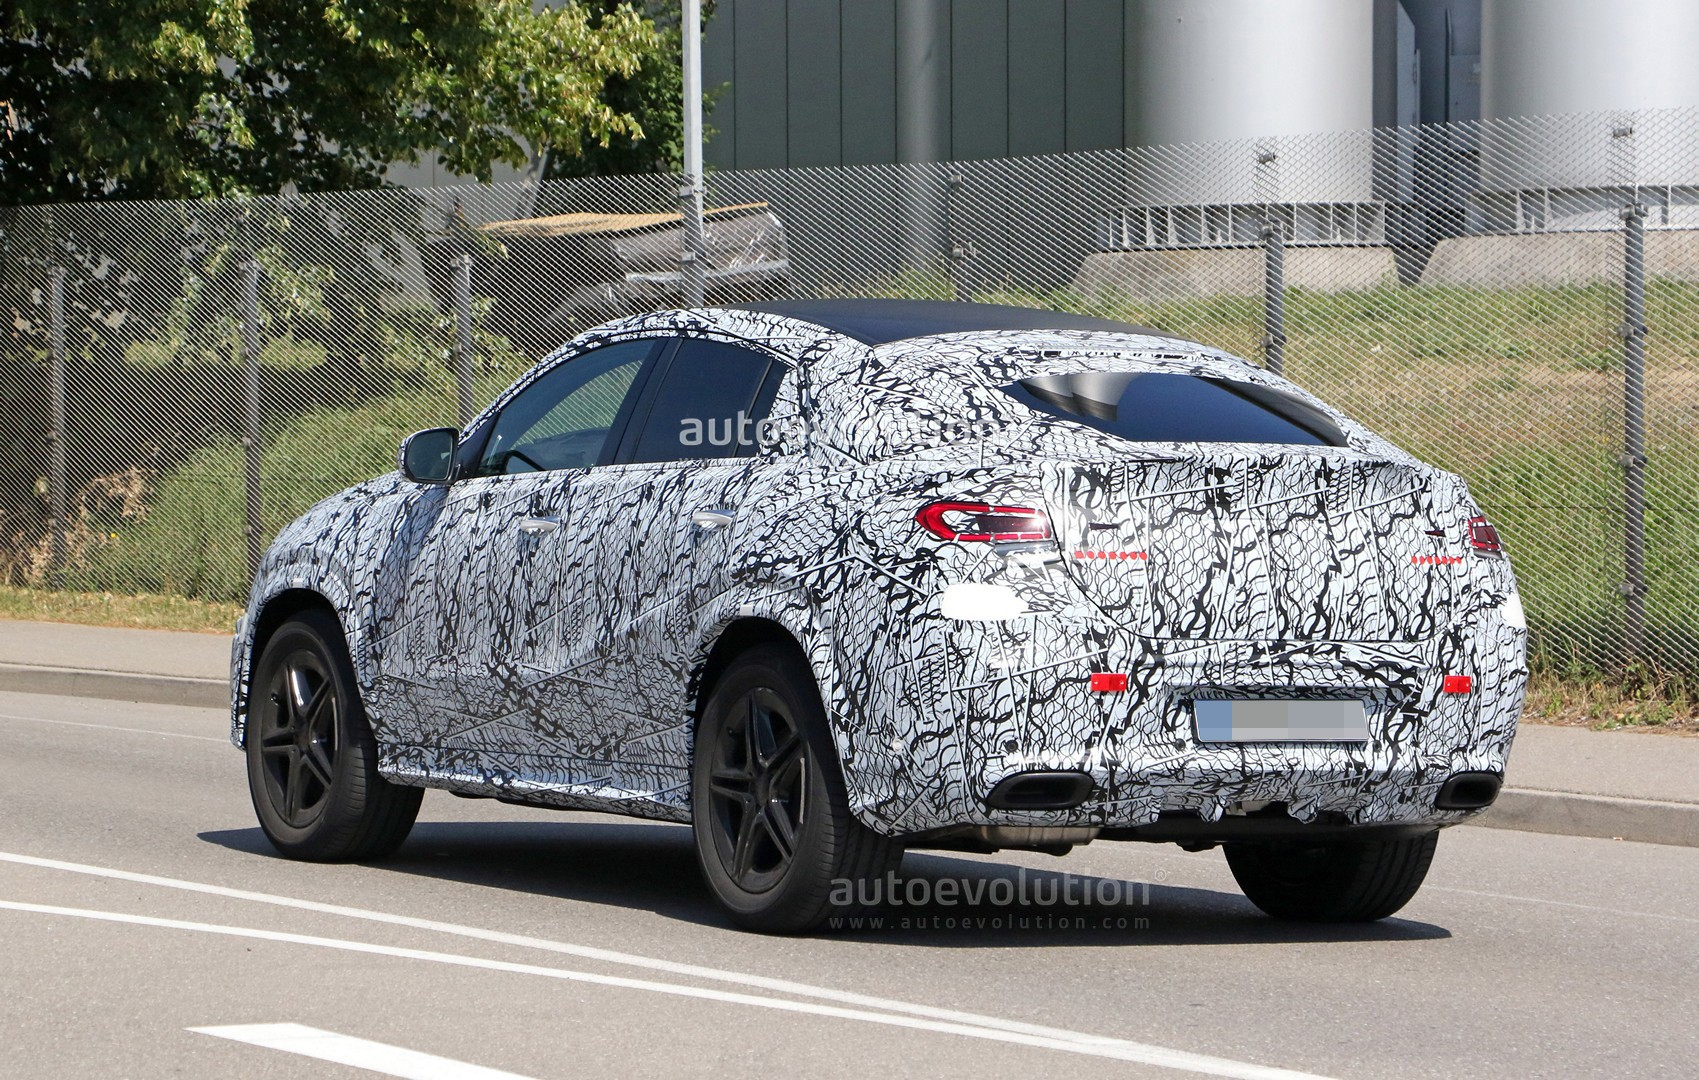 Gle 63s Amg >> 2020 Mercedes GLE Coupe Spied Up Close With AMG Line Kit - autoevolution